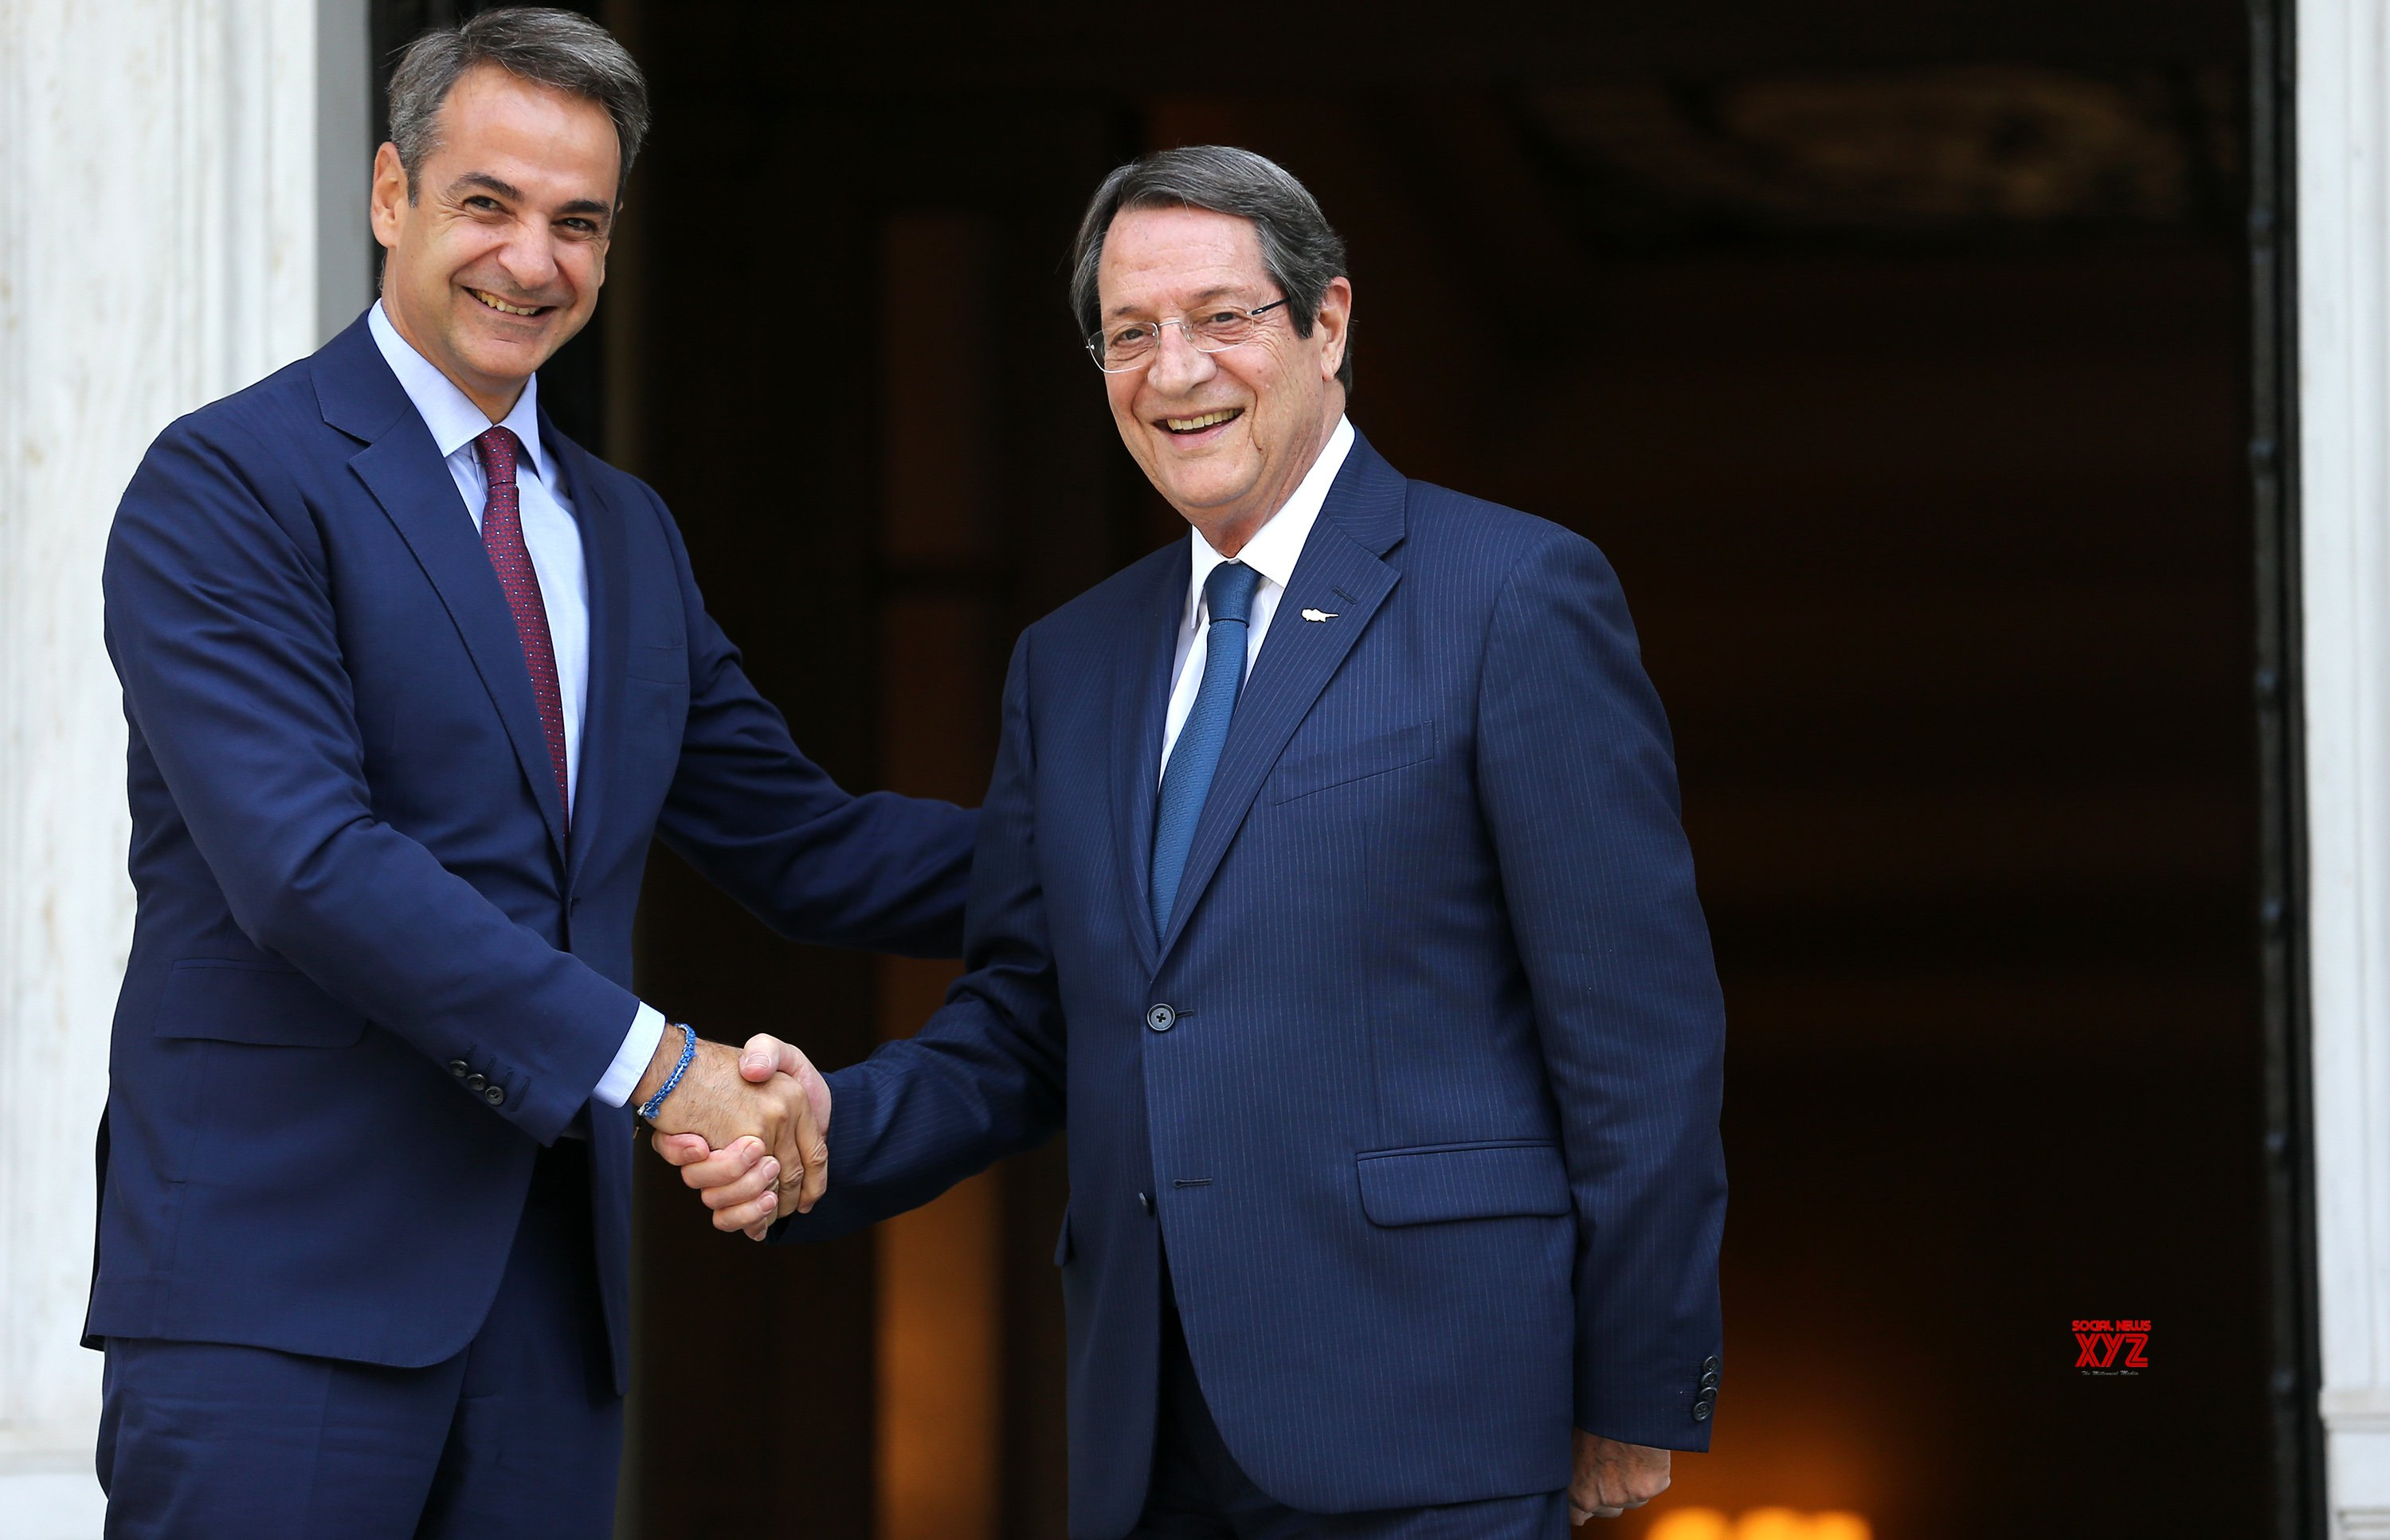 GREECE - ATHENS - PM - CYPRIOT PRESIDENT - MEETING #Gallery